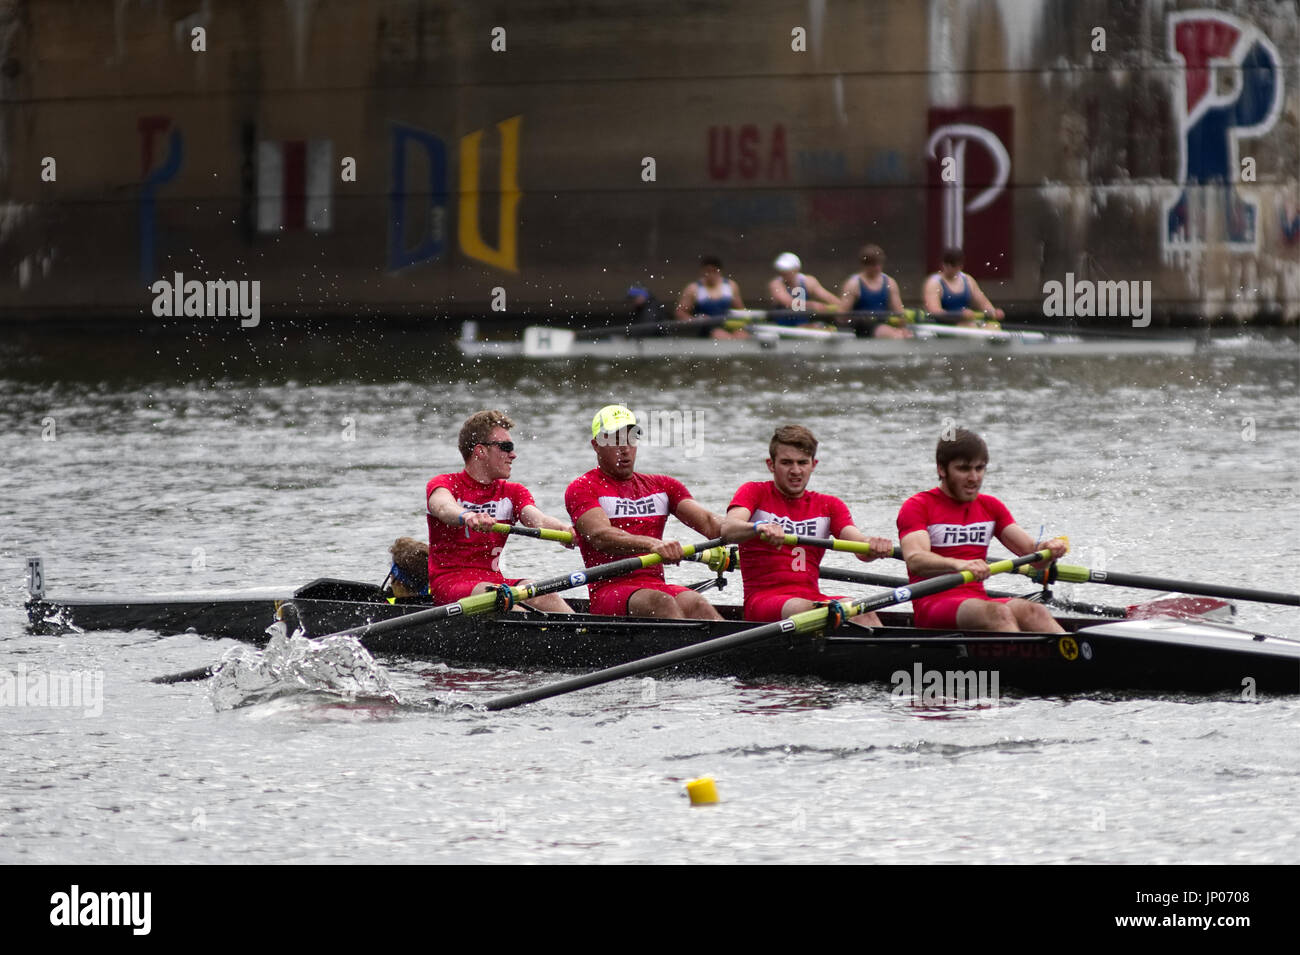 Members of a collegiate crew compete in the annual Dad Vail Regatta on the Schuylkill River in the Fairmount Park section of Philadelphia, PA - Stock Image